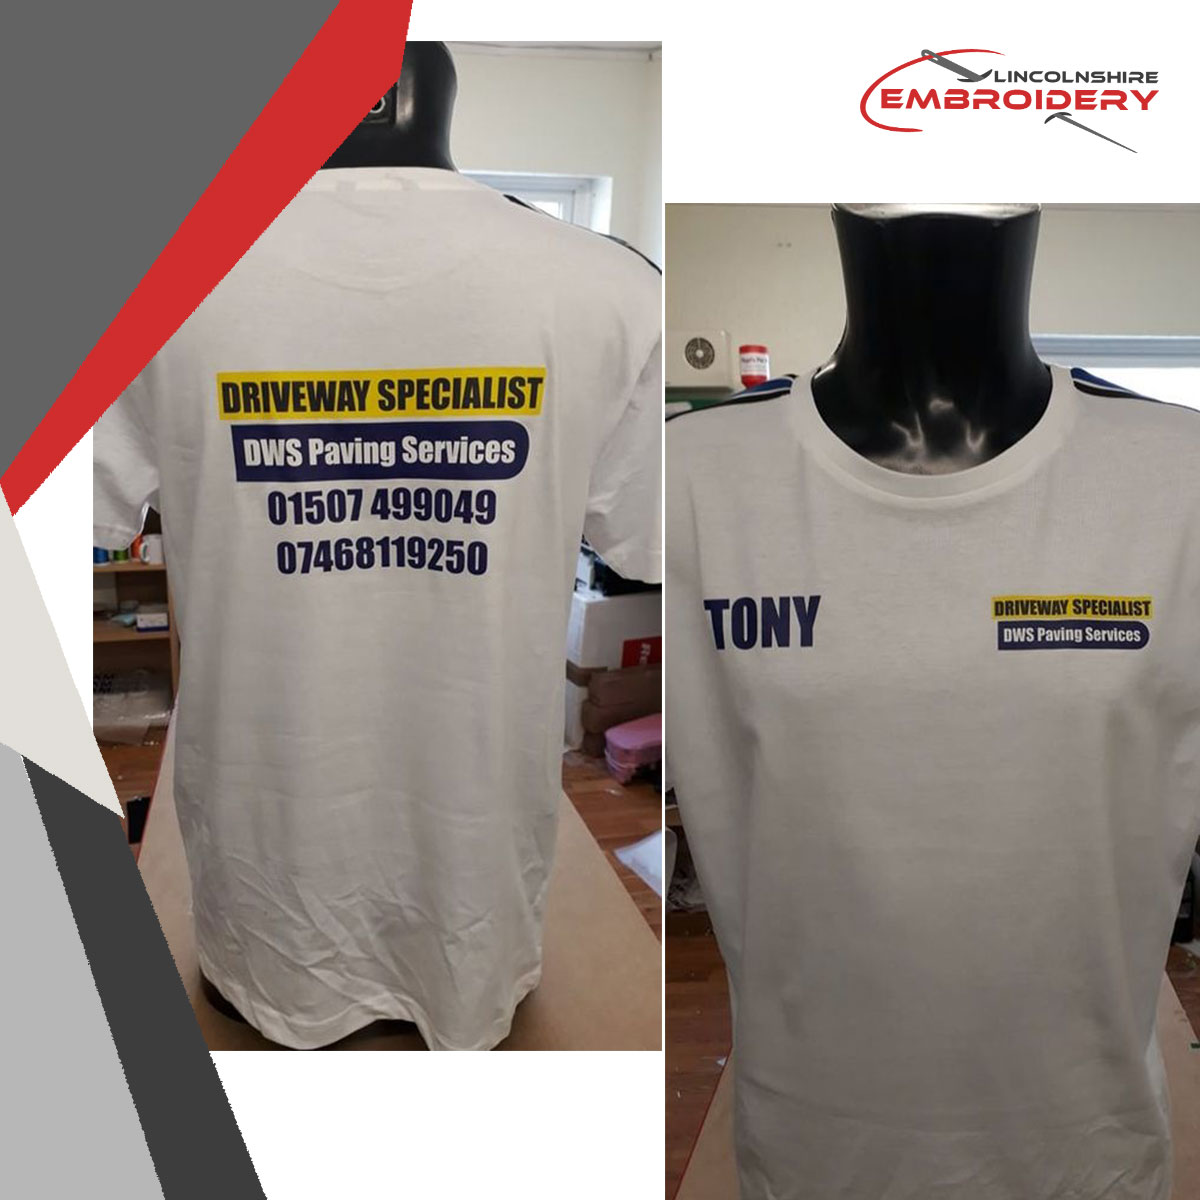 You can also have your workwear printed by us like this customer! Printing and embroidery have various benefits, we'll chat with you which one suits your order better 🙌 #corporatewear #branding #customisation #workwear #uniform #embroidery #lincsconnect #shoplocal #lincolnshire https://t.co/QhnZ4crlVN